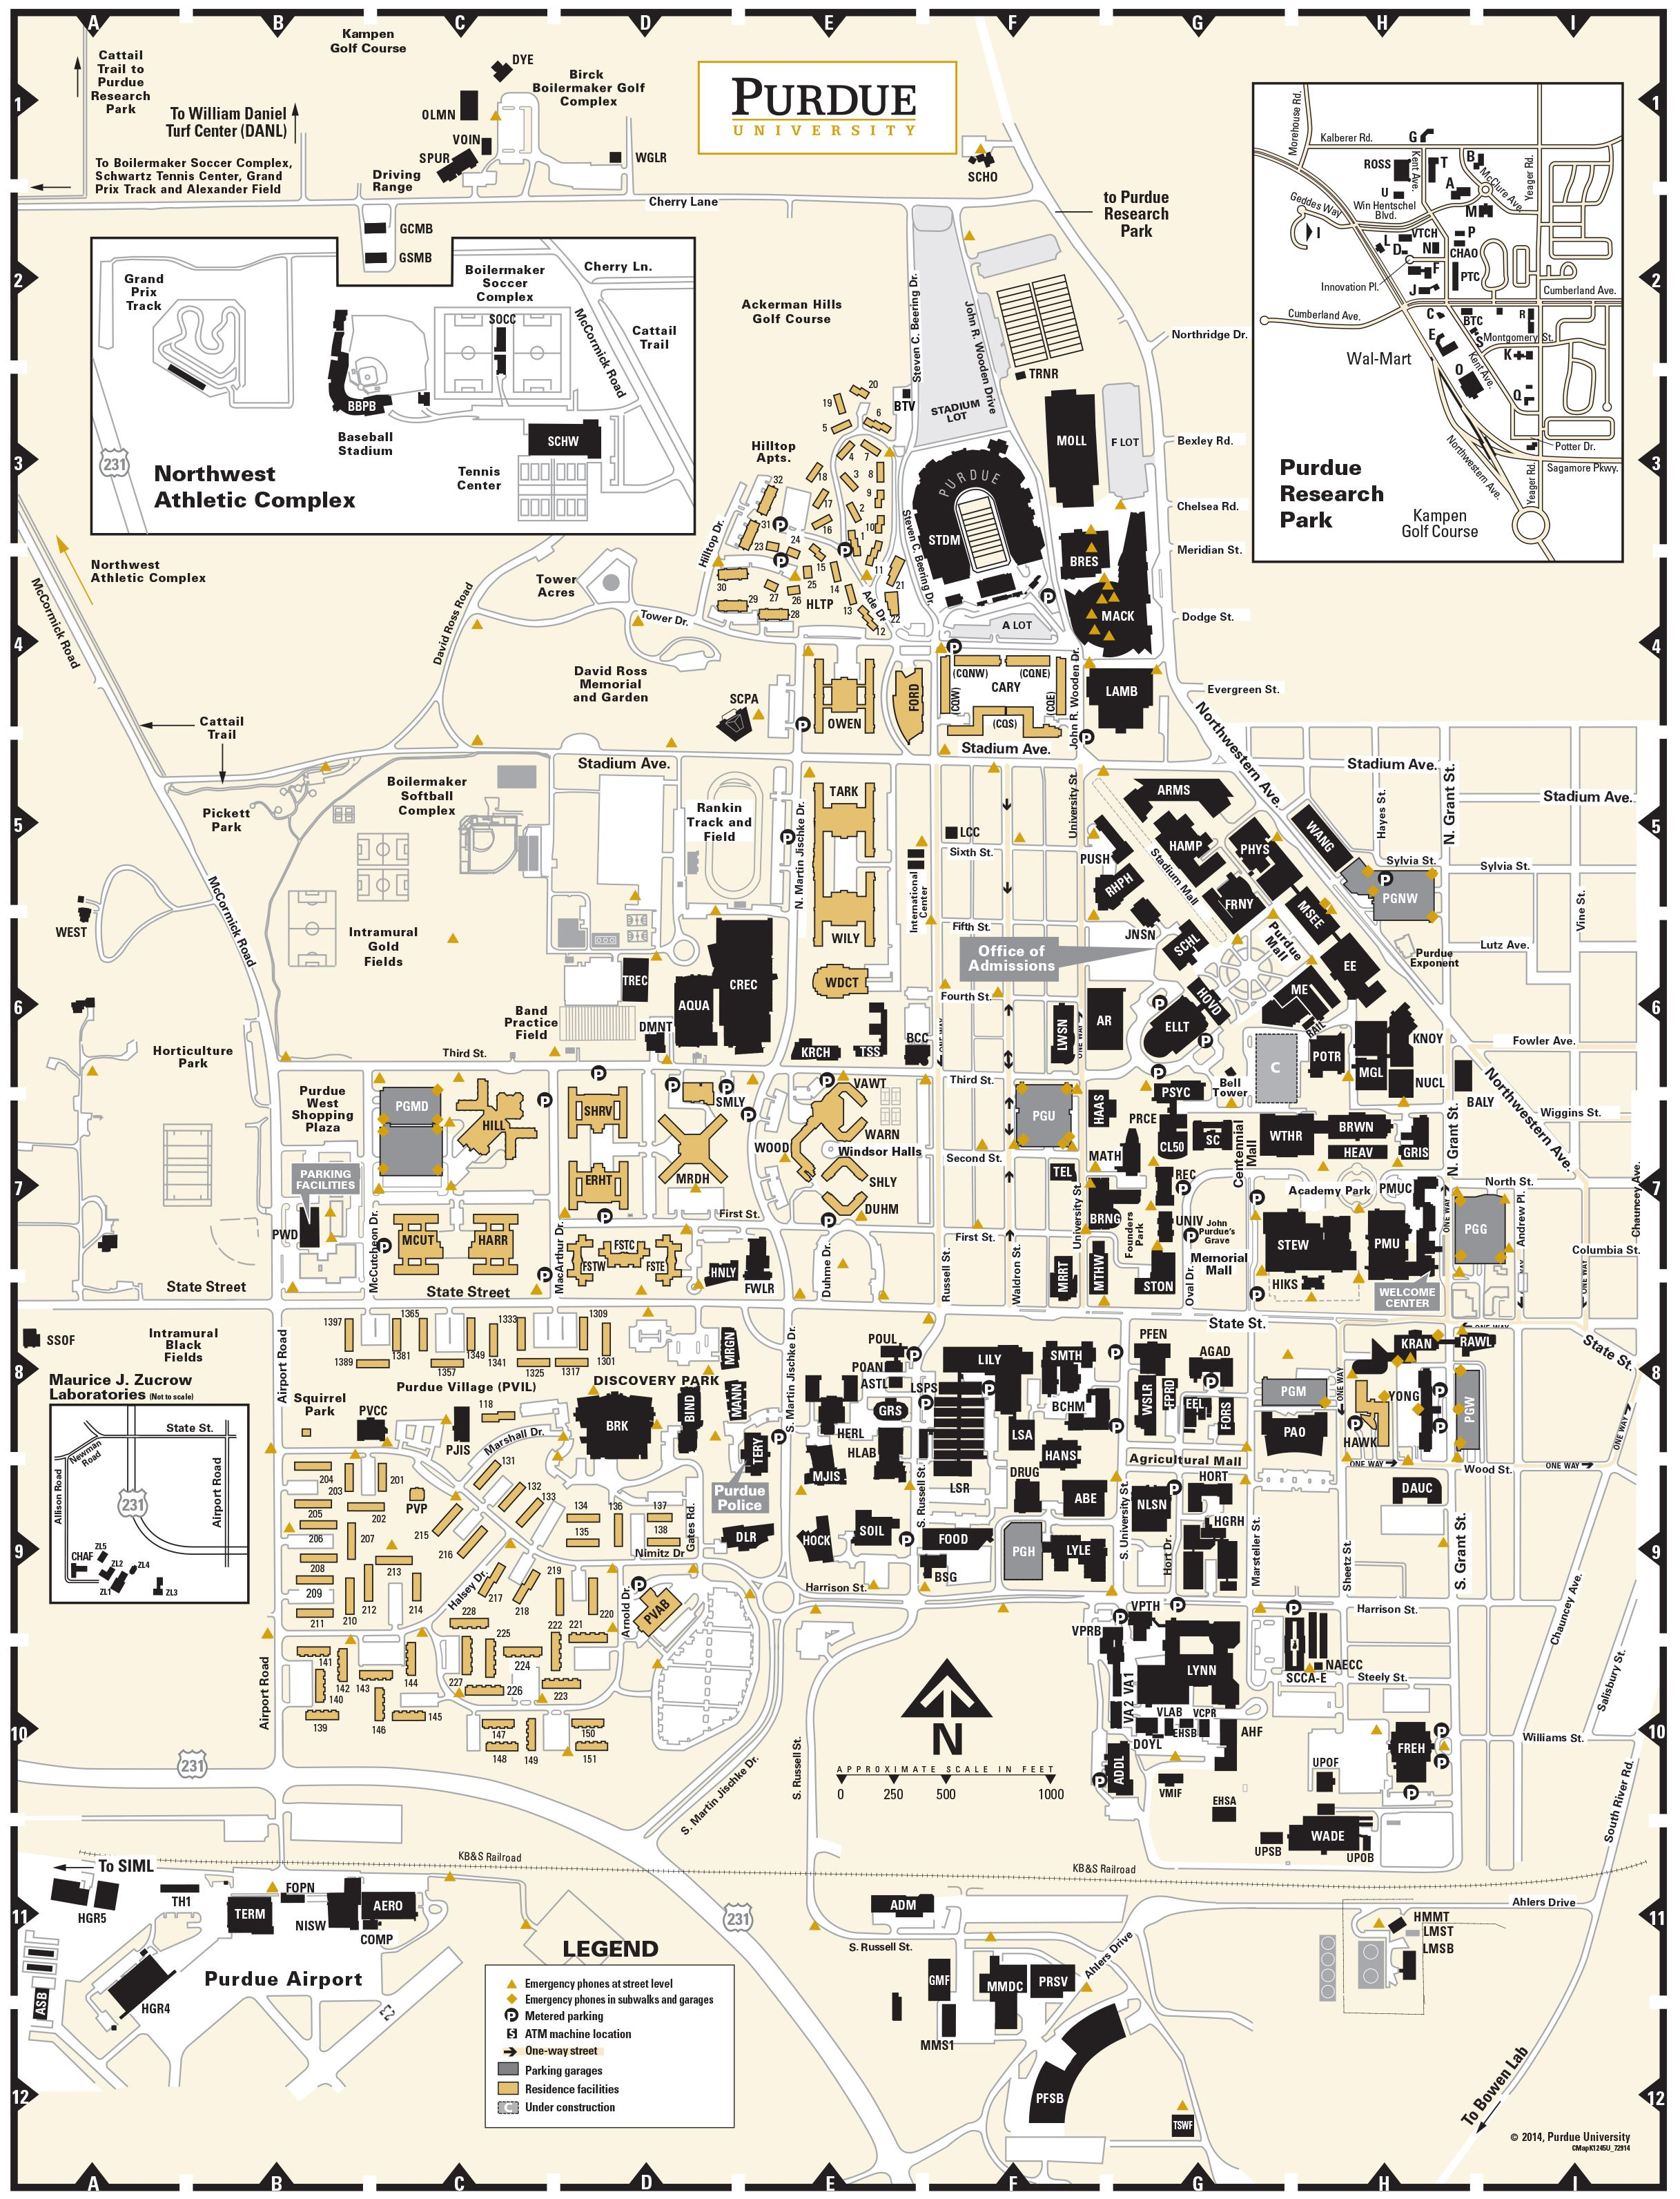 Cos Campus Map : campus, Purdue, University, Campus, Circa, 2014,, Pictorial, Maps,